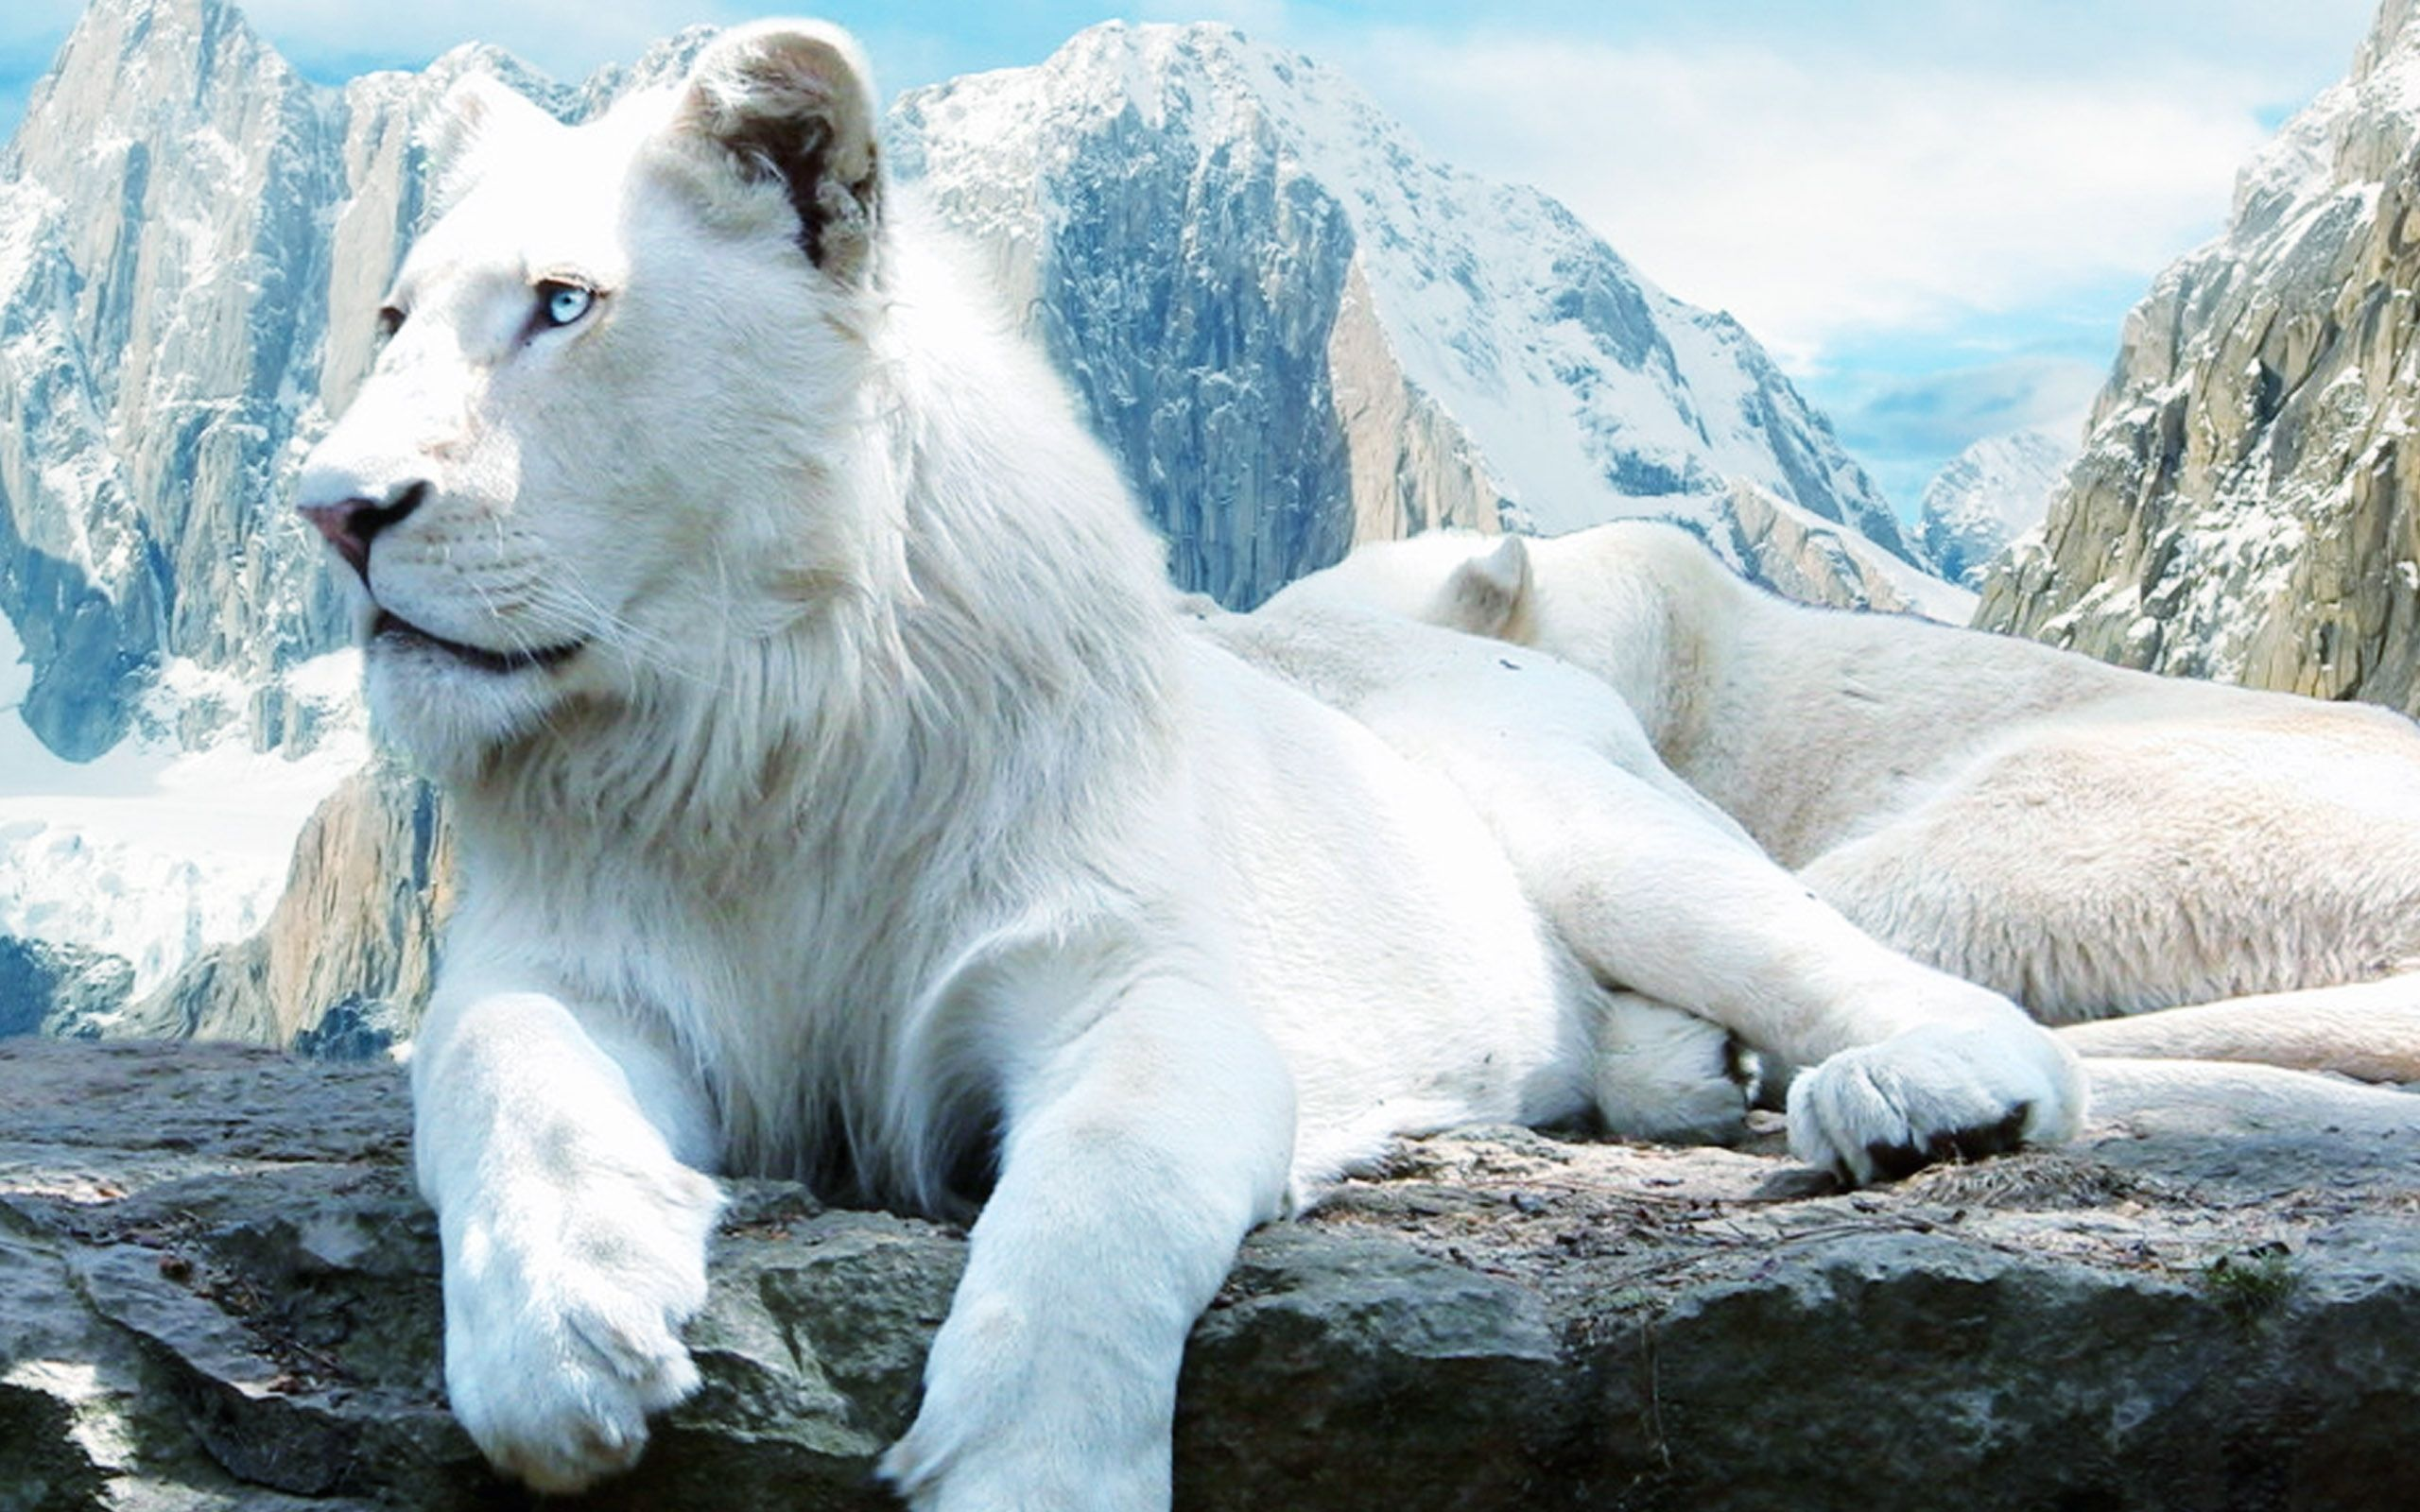 White Lion Pictures White Lions Hd Wallpapers Hd Wallpapers Inn Lion Images Animals White Lion